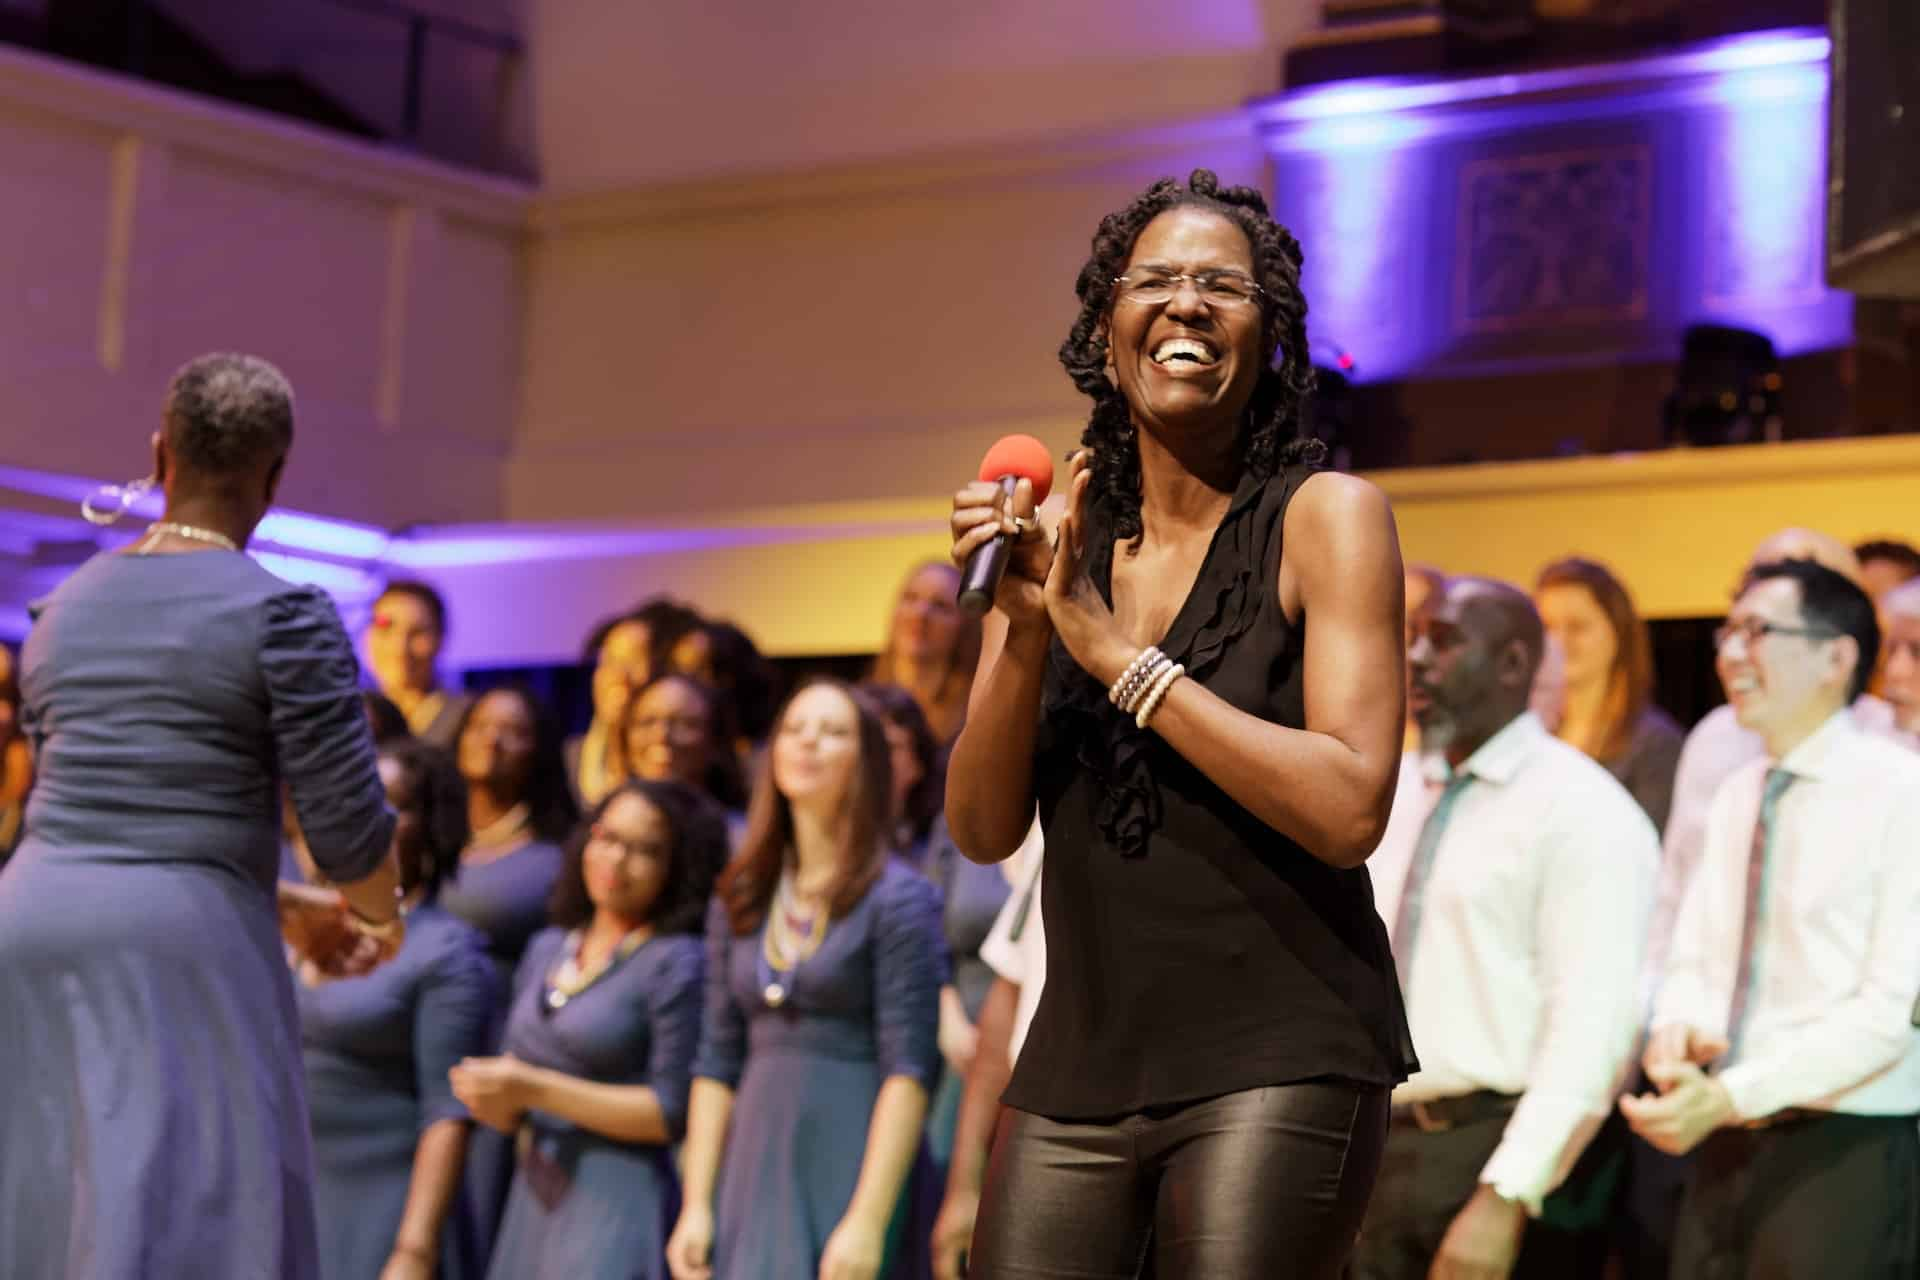 Improve Your Music & Singing Teaching Now. A Course for Choirs, Congregation and Artists